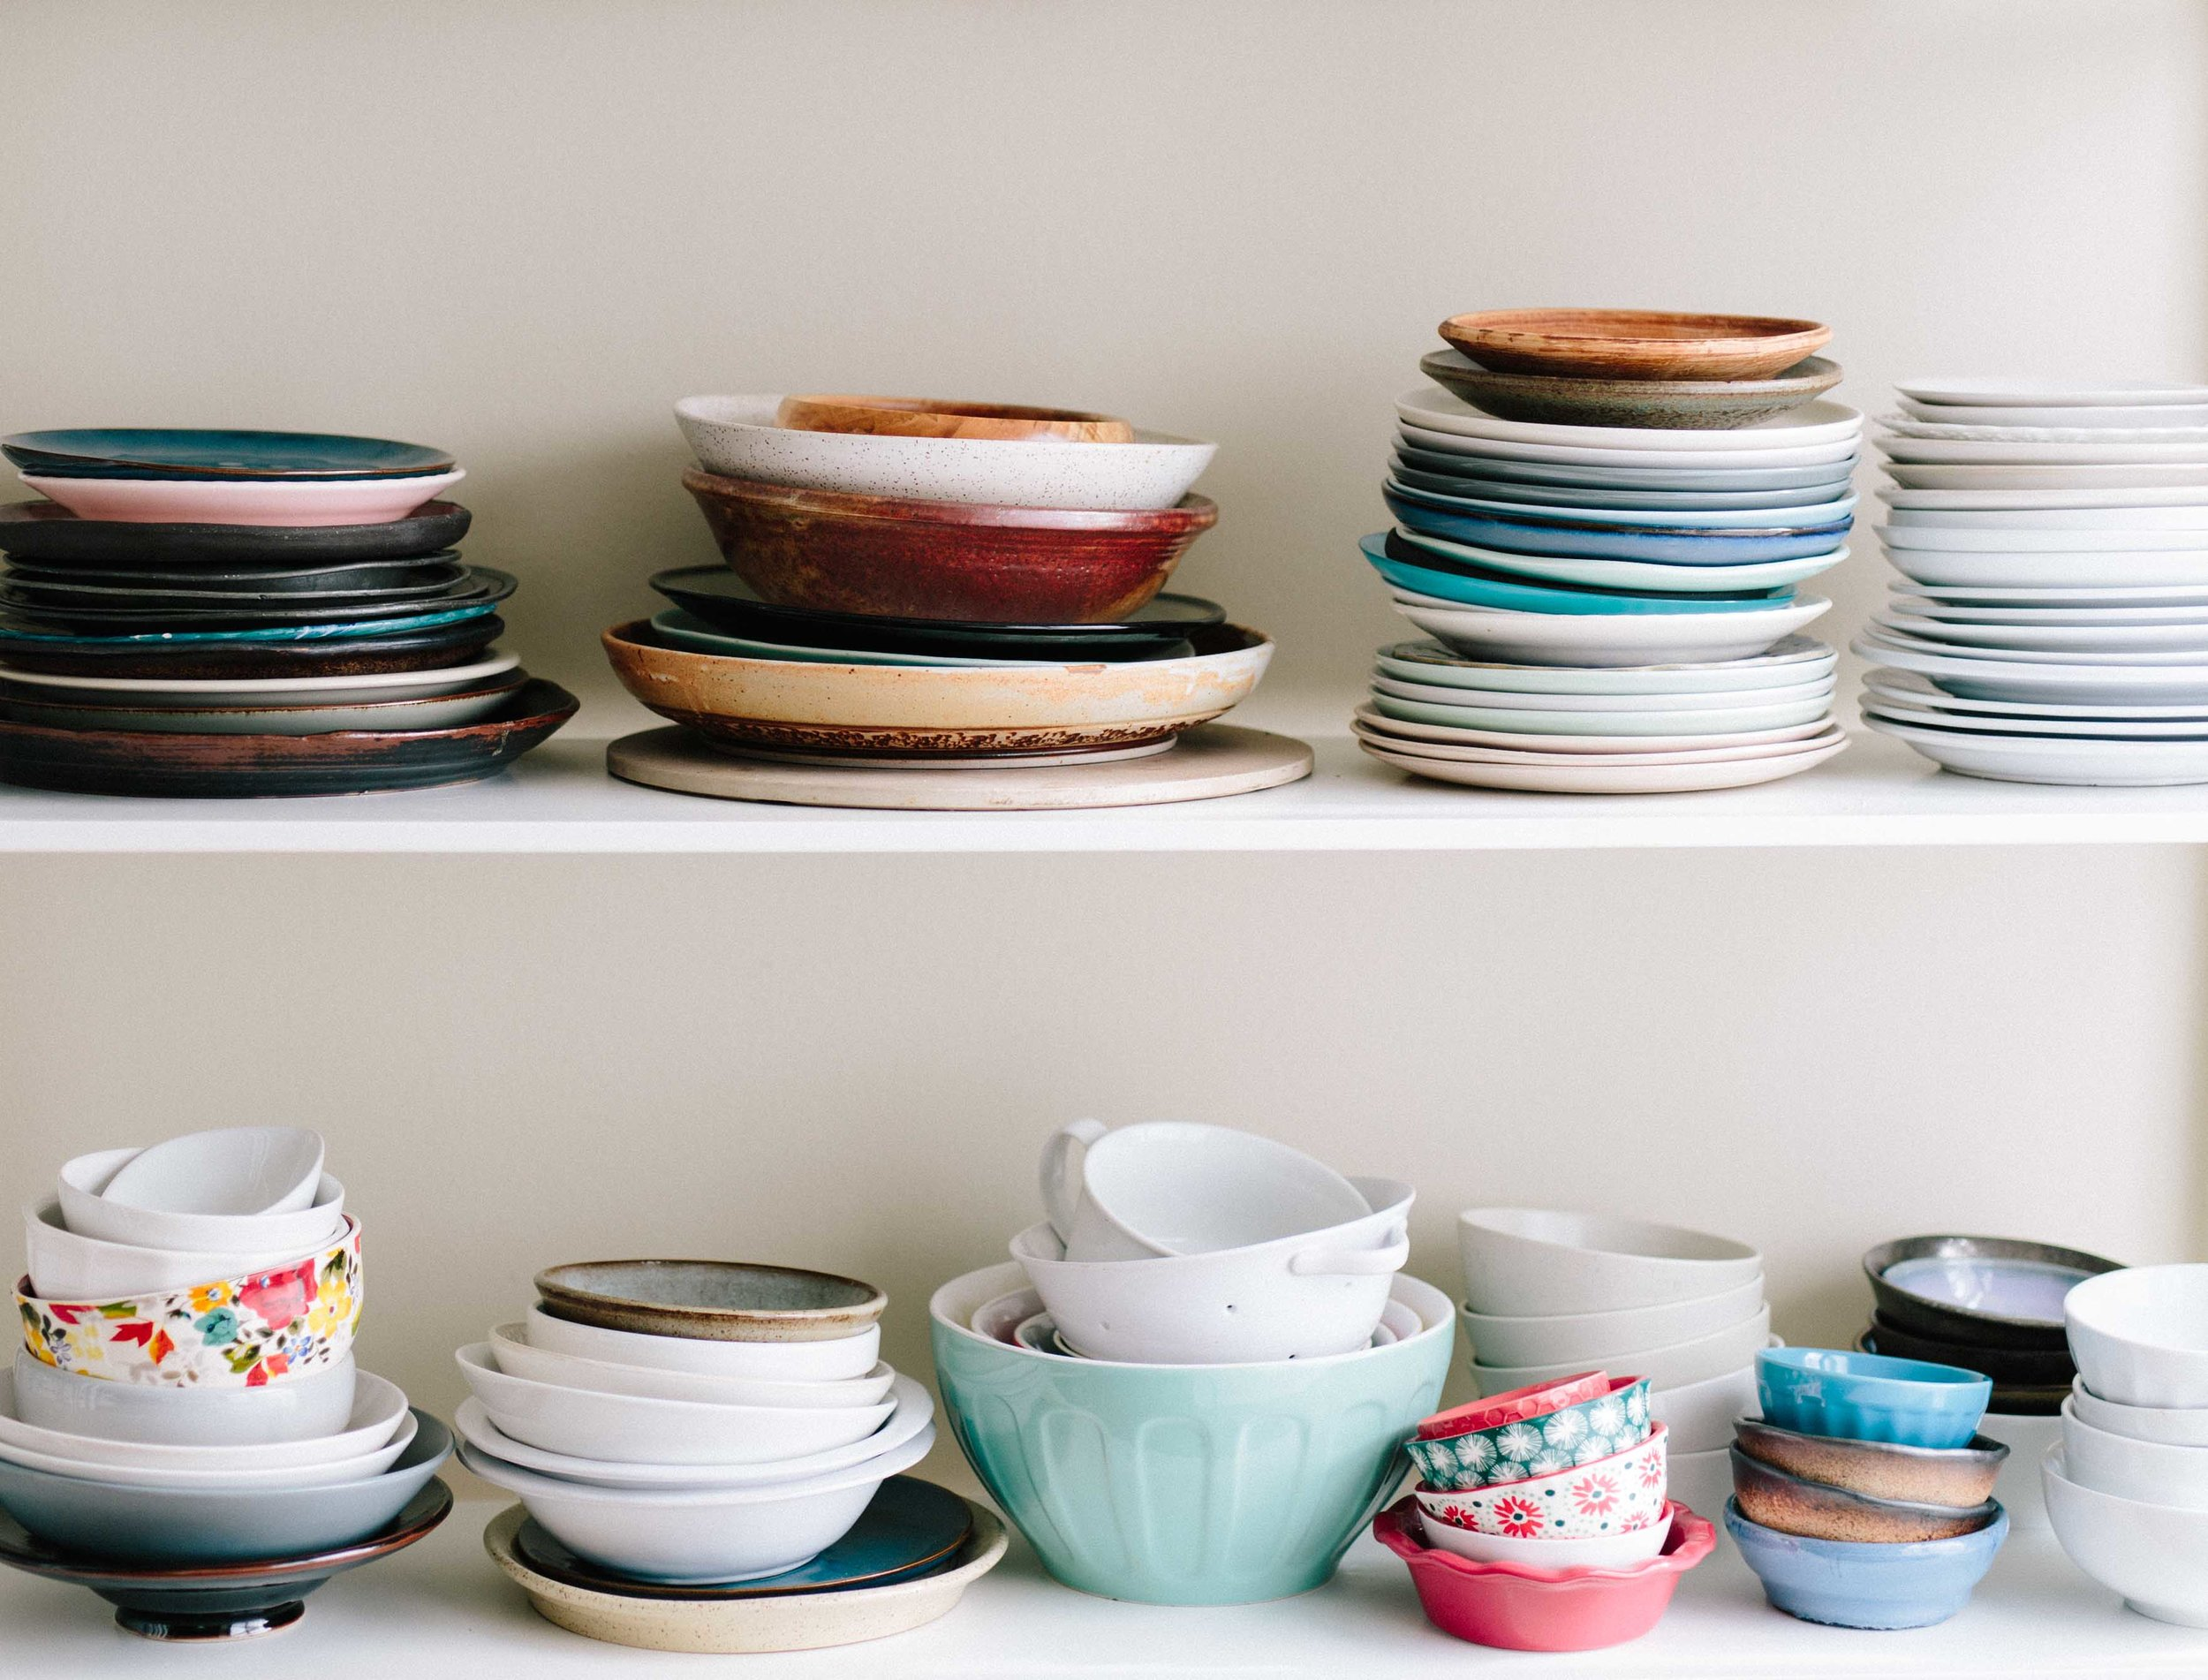 02 - She has a collection of vintage plates on her wall from places all over the globe. One of her favorite gifts is when someone brings a plate back from their trip for her.